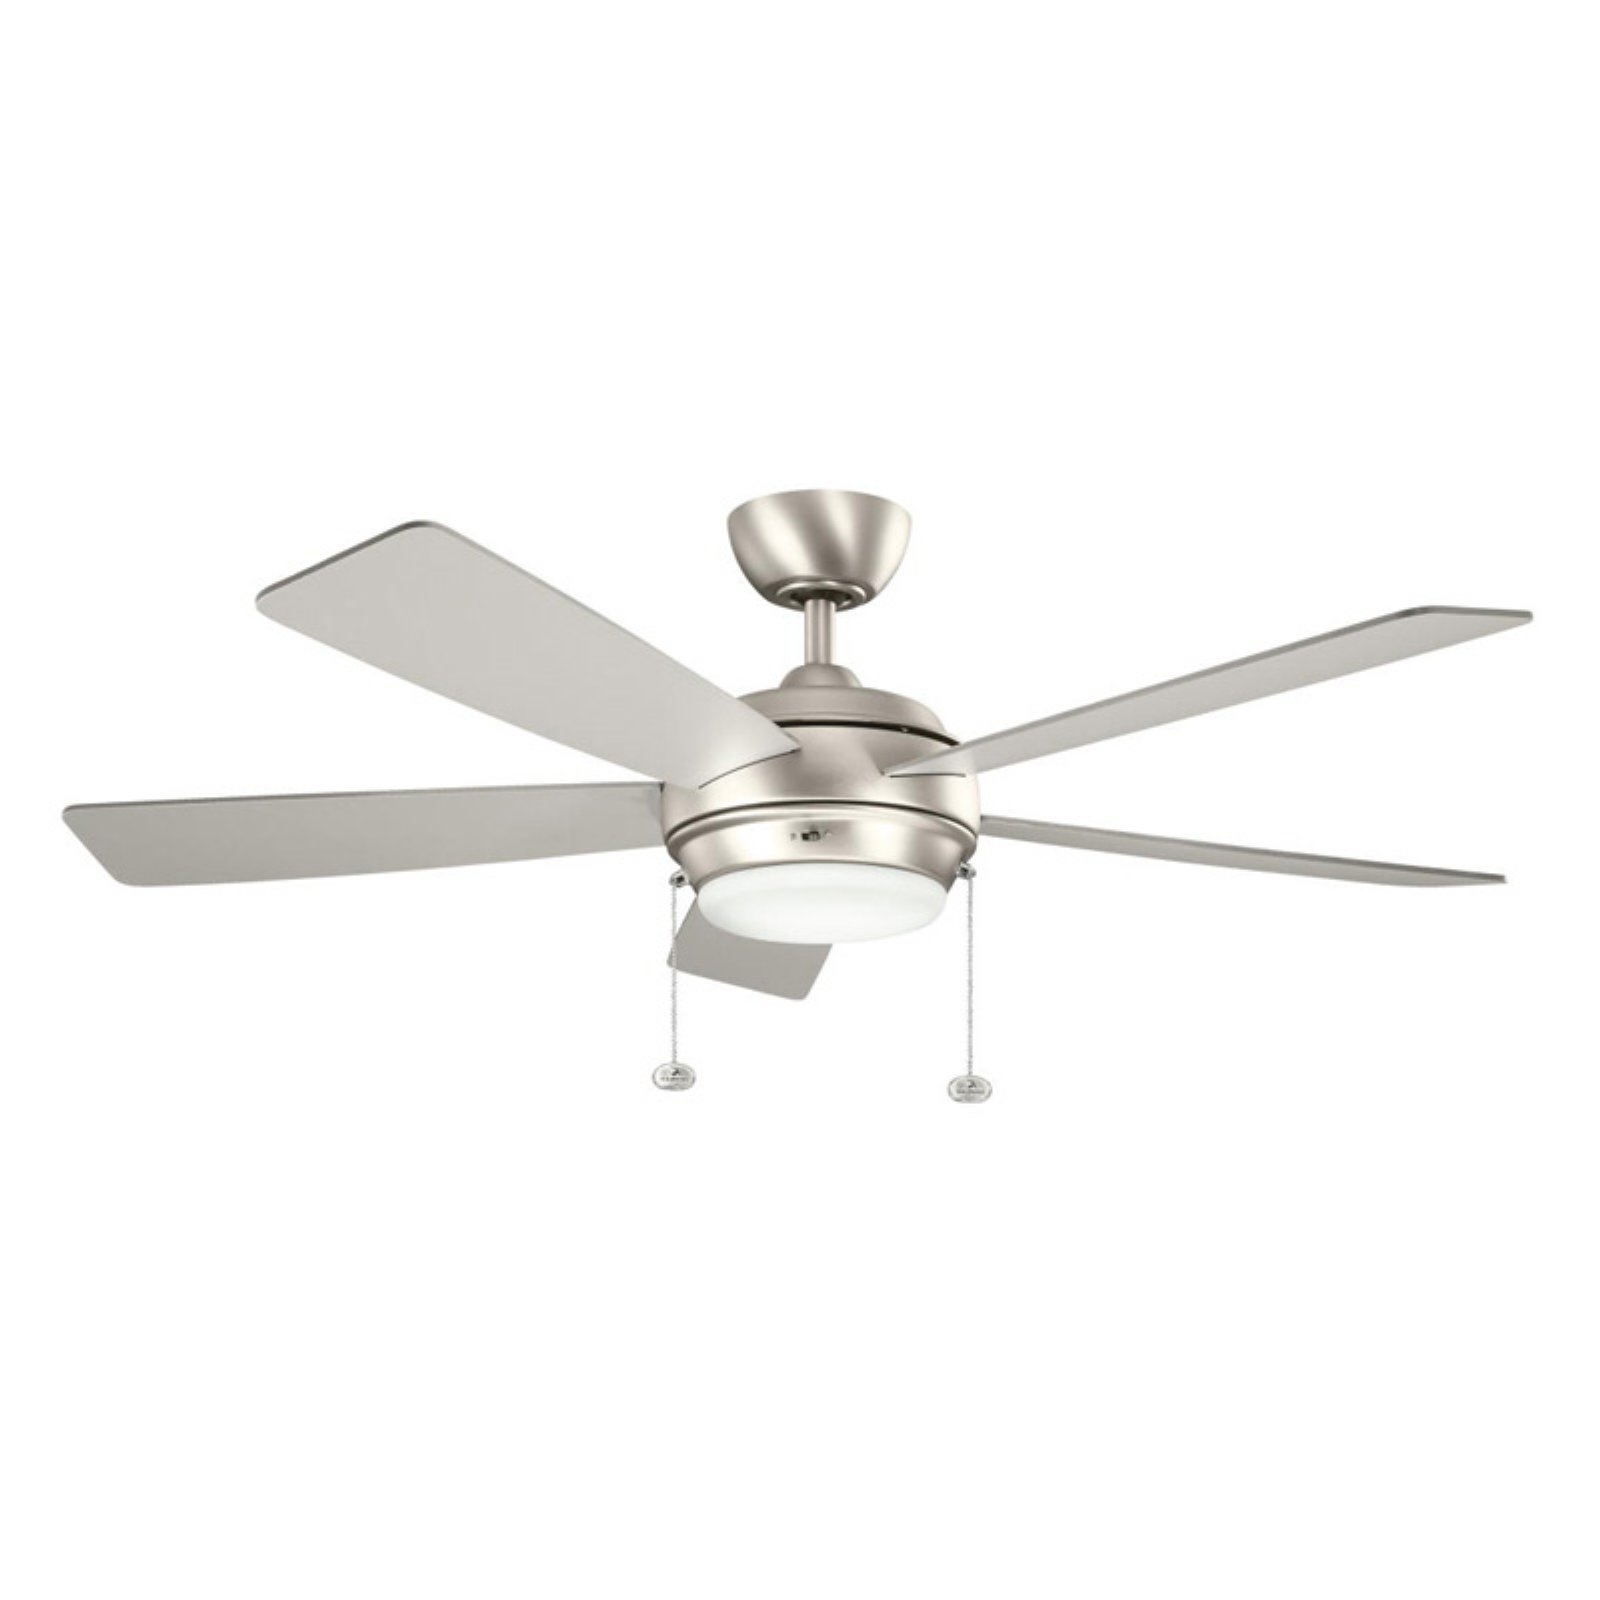 Kichler Outdoor Ceiling Fans With Lights Inside Most Up To Date Kichler Starkk 52 In. Indoor / Outdoor Ceiling Fan – Walmart (Gallery 10 of 20)